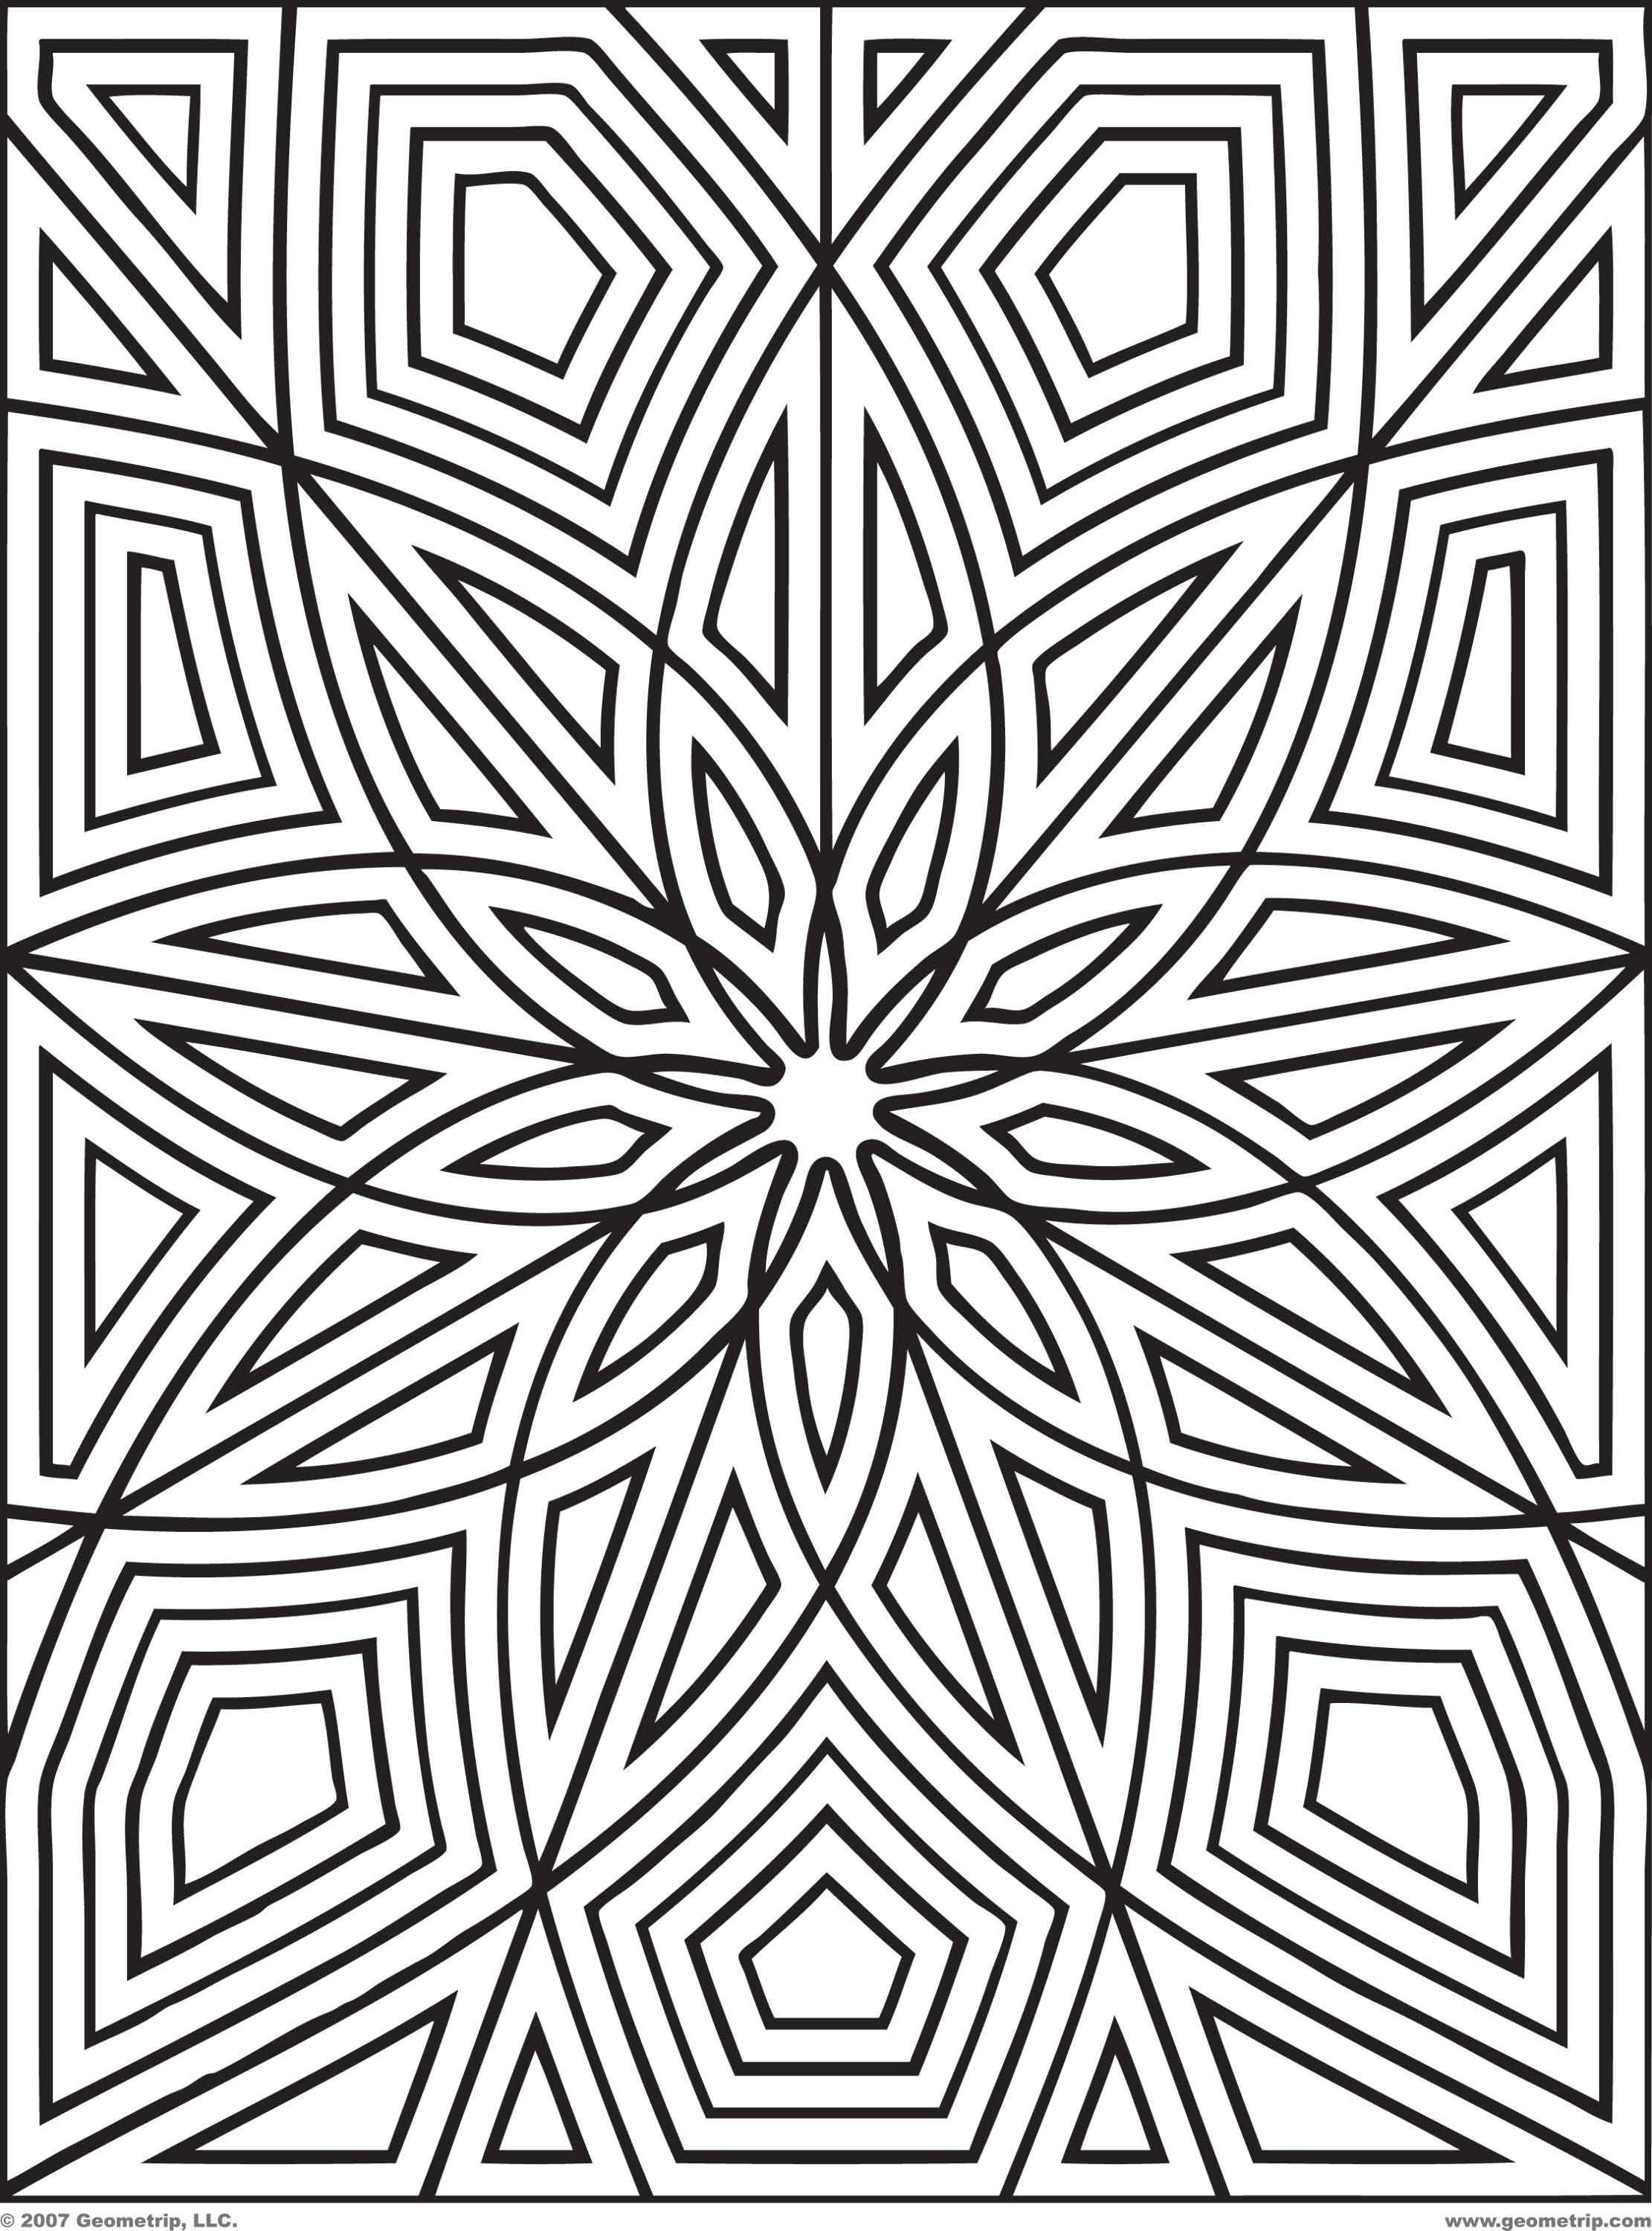 Printable Geometric Patterns | Designs Print Get Your Free ...